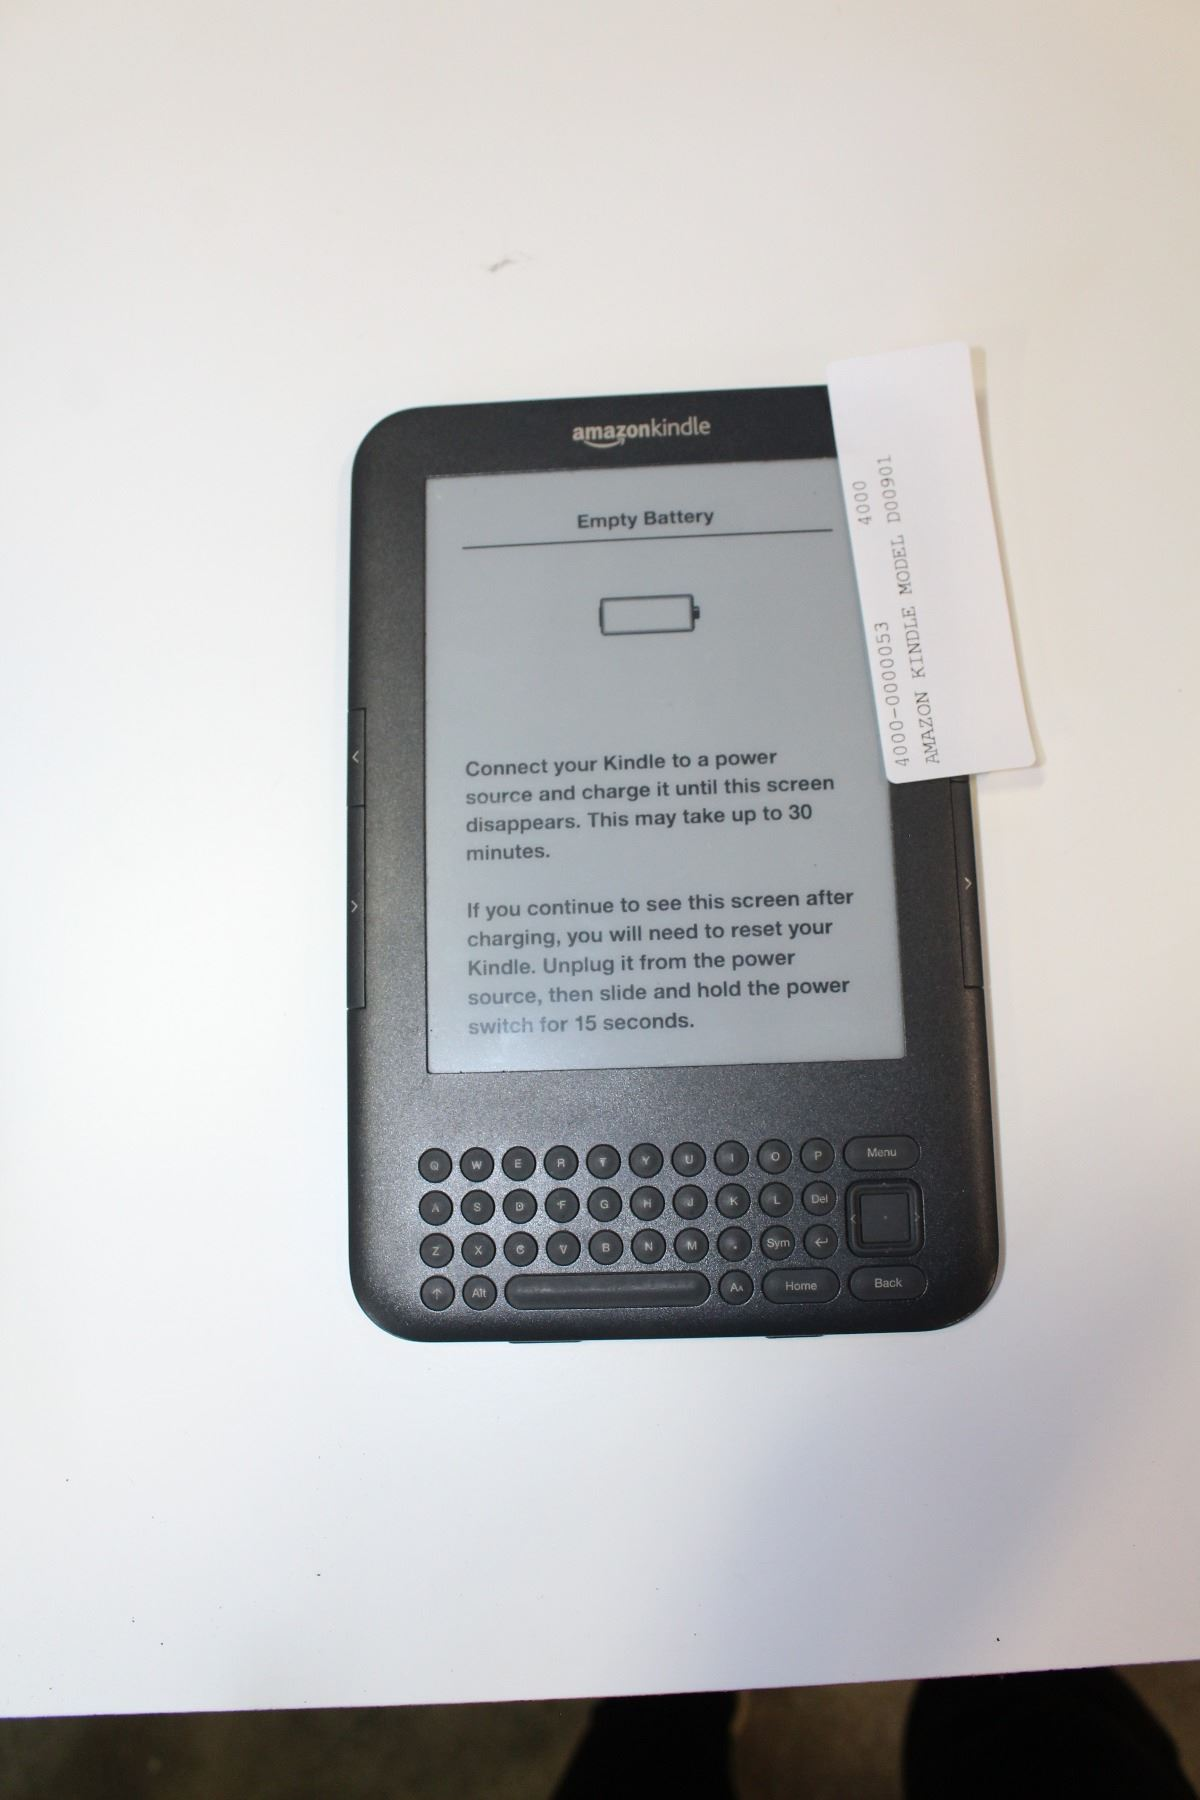 amazon kindle model d00901